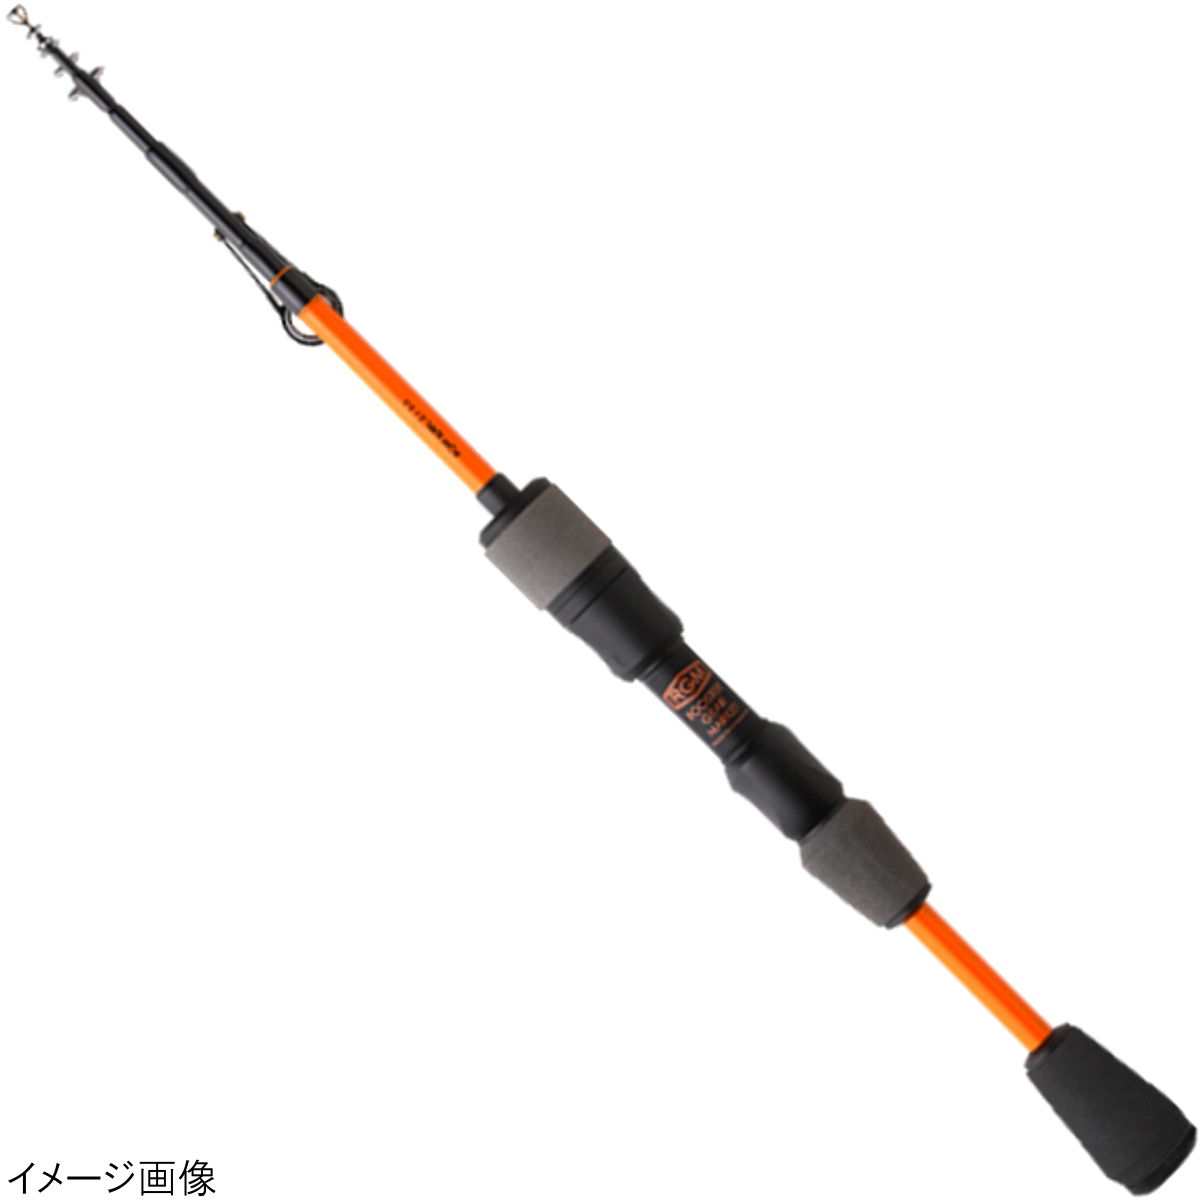 ジャッカル RGM spec.2 5.5 BLACK/ORANGE